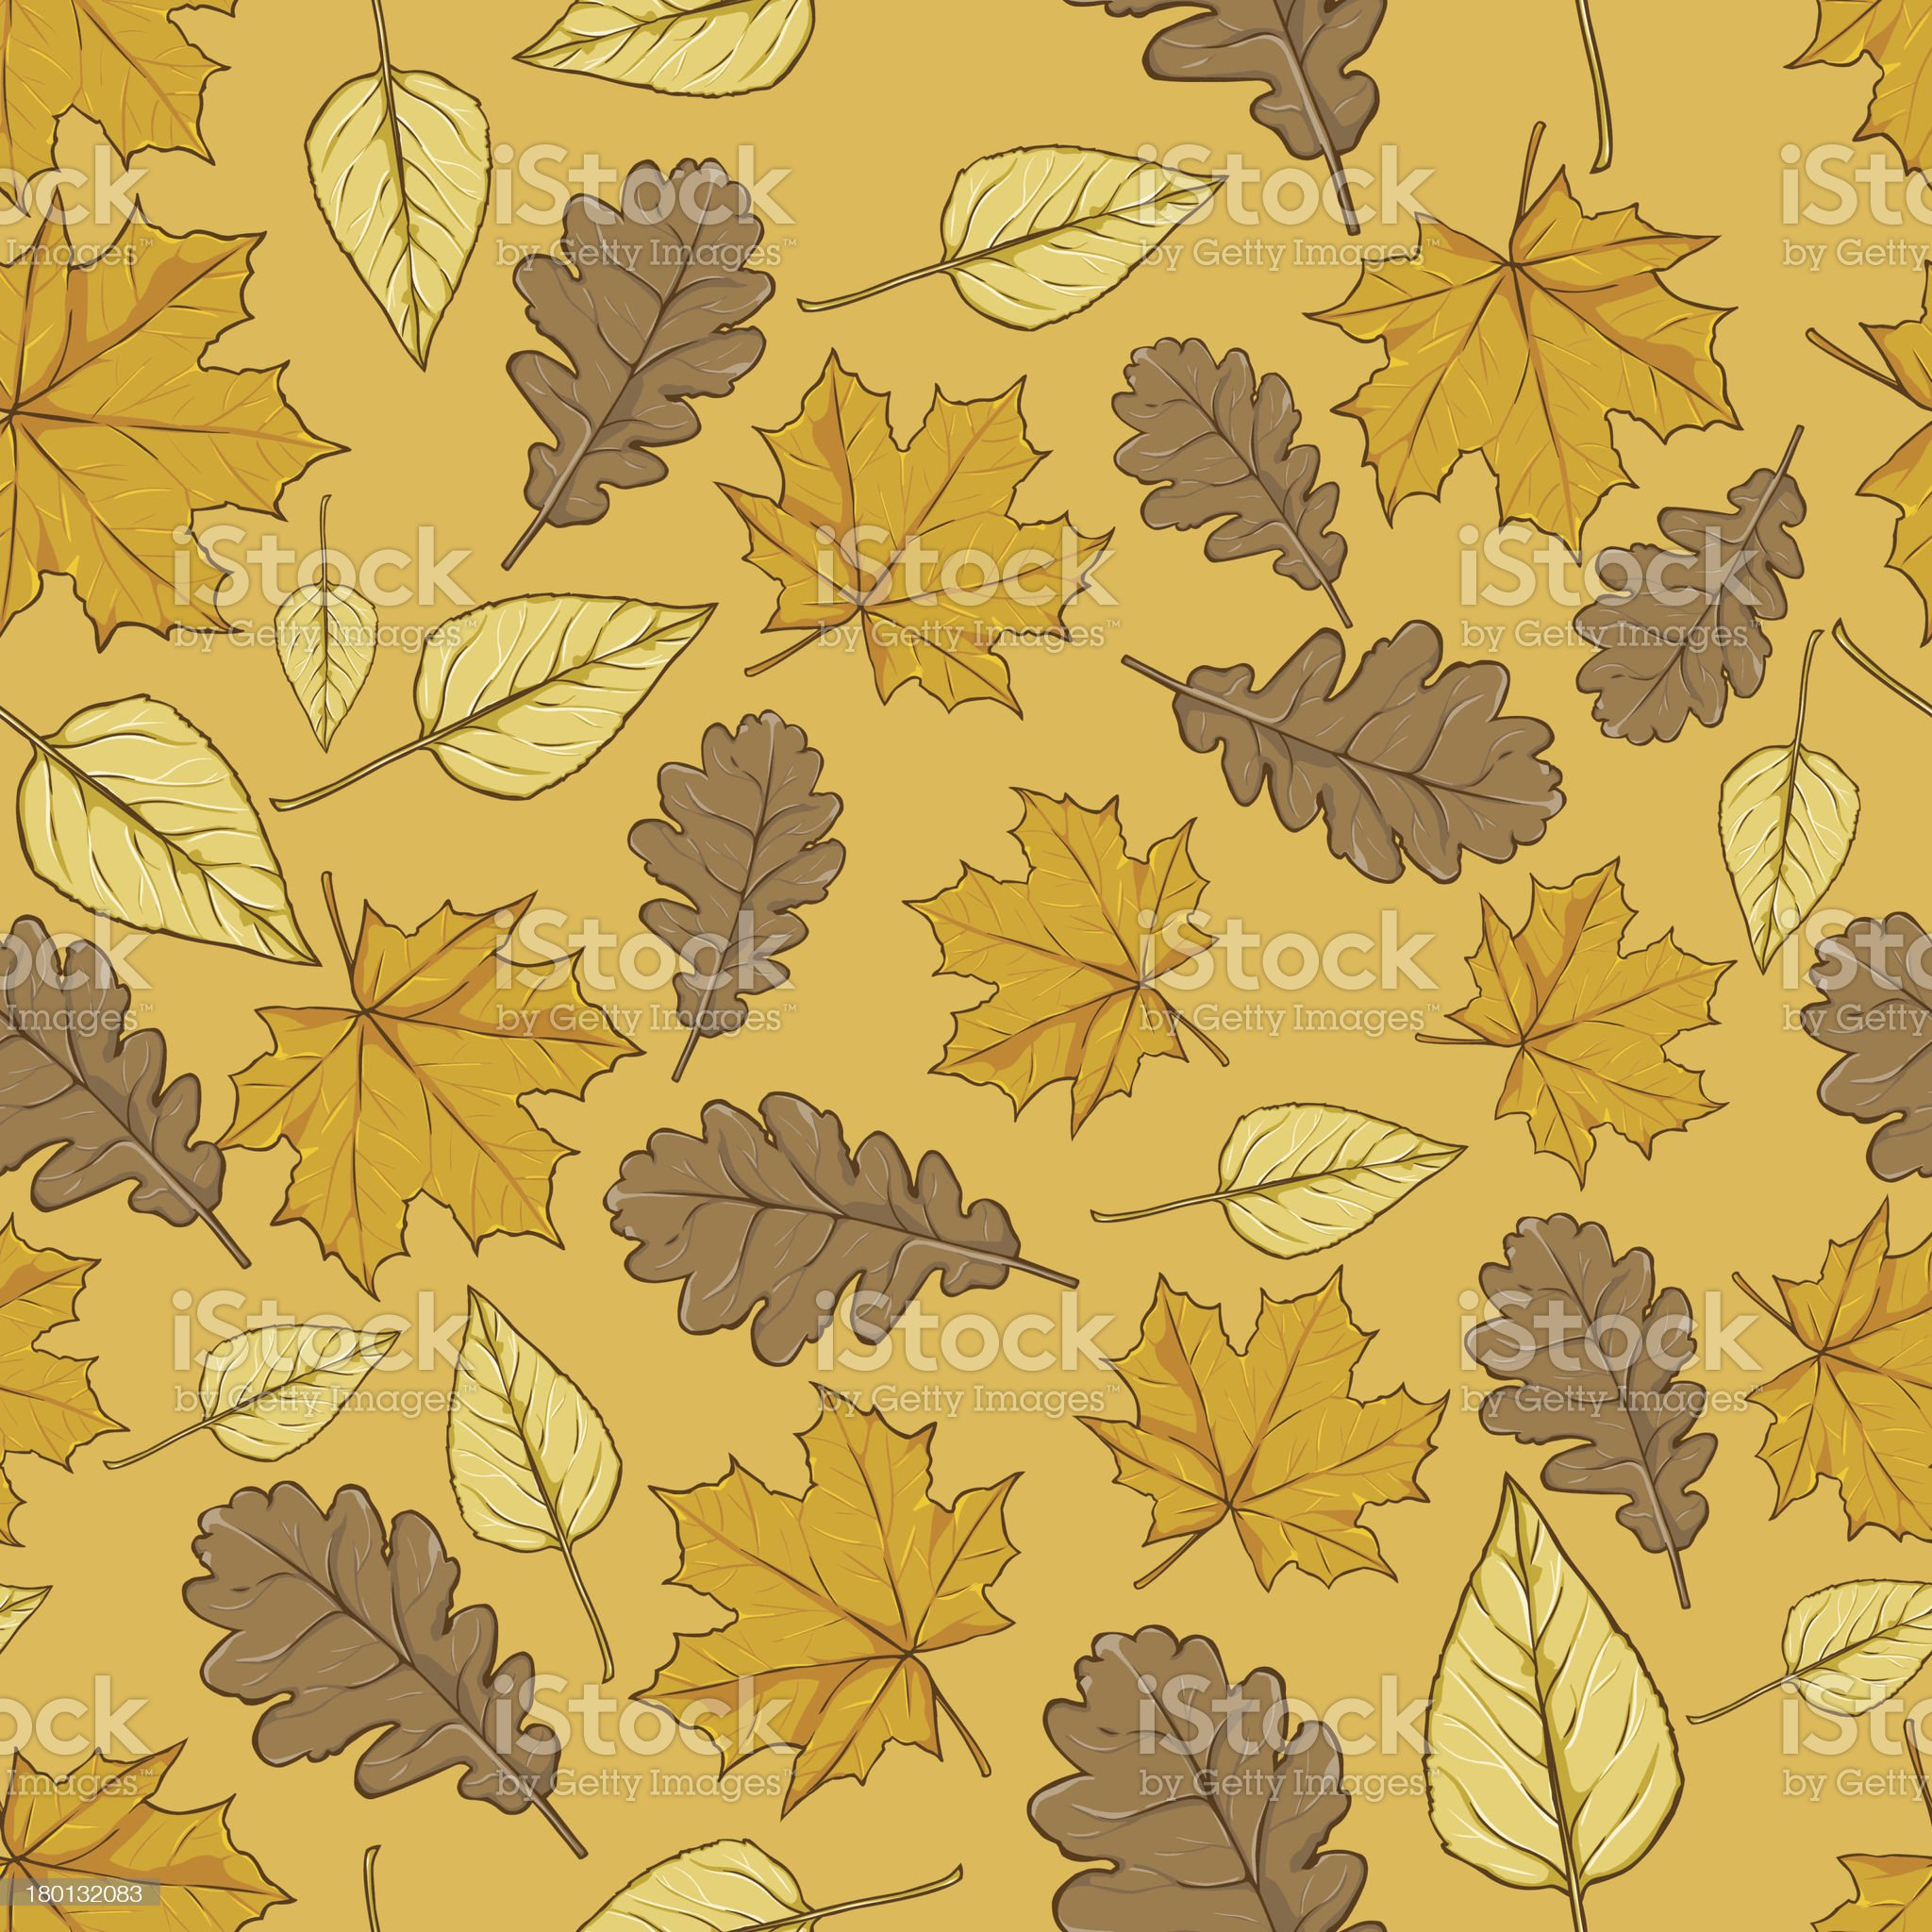 vector pattern of autumn leaves on yellow background royalty-free stock vector art